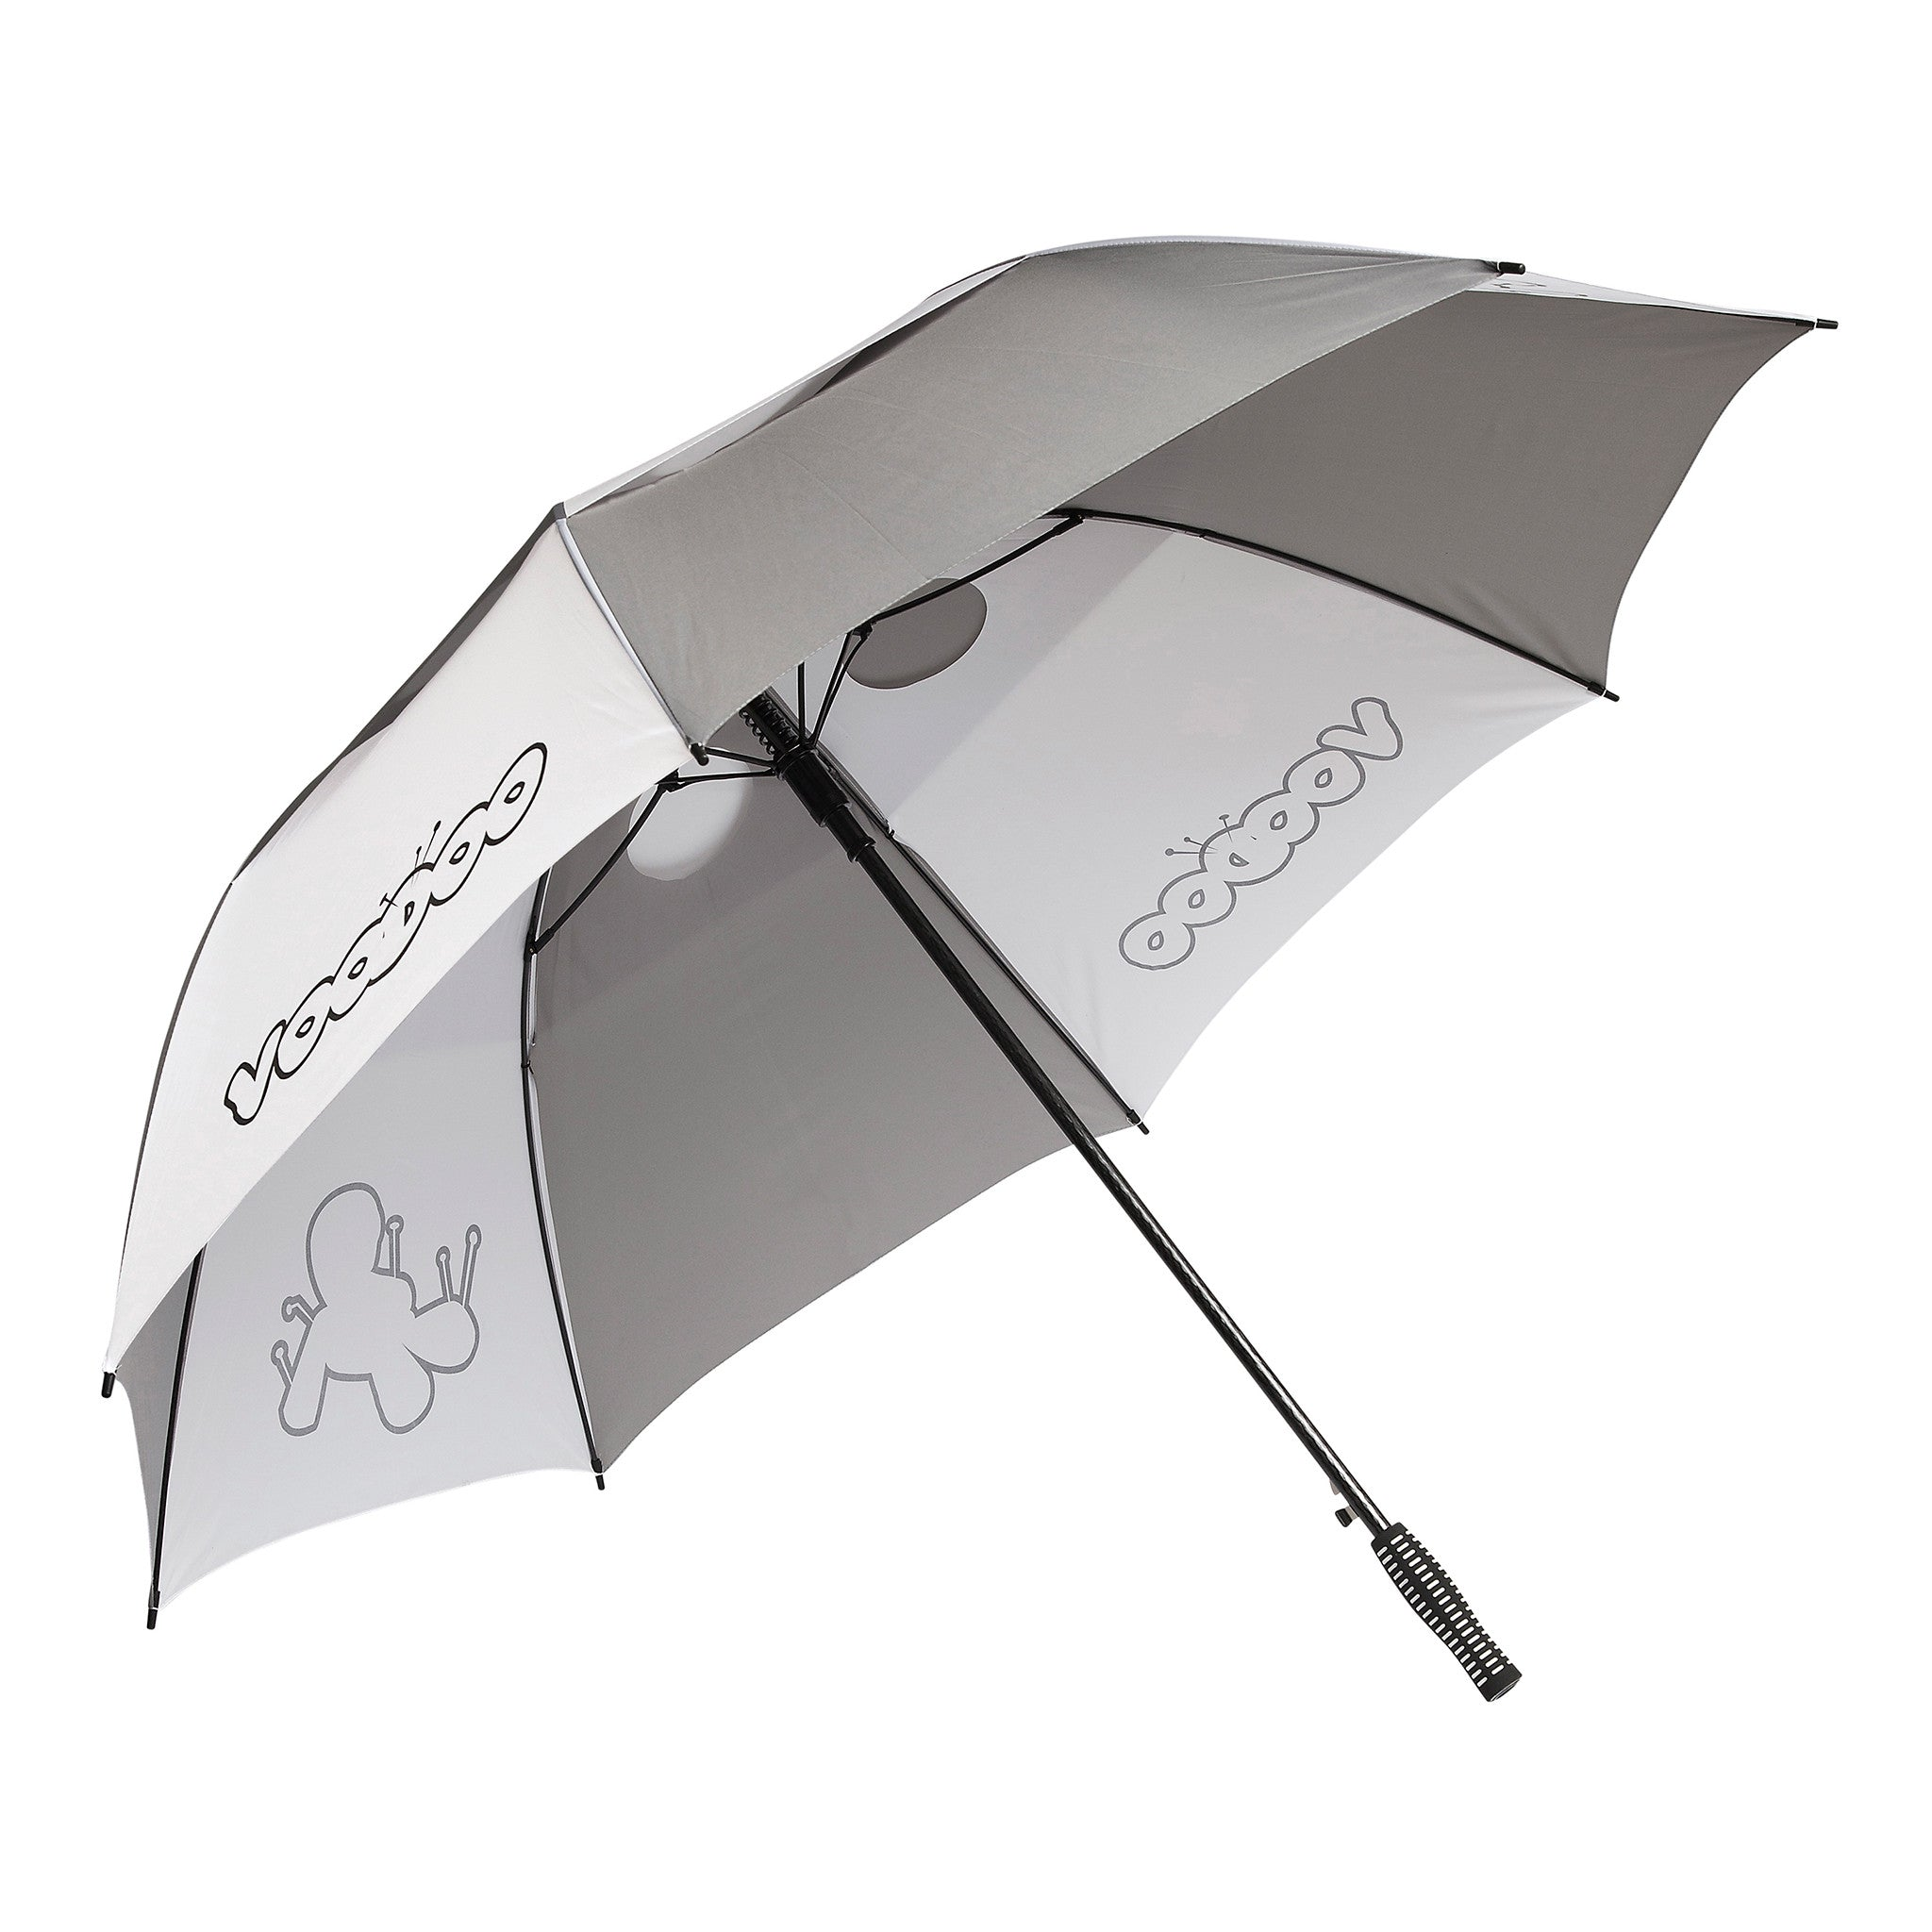 Voodoo Disc Golf Rain Shelter Umbrella